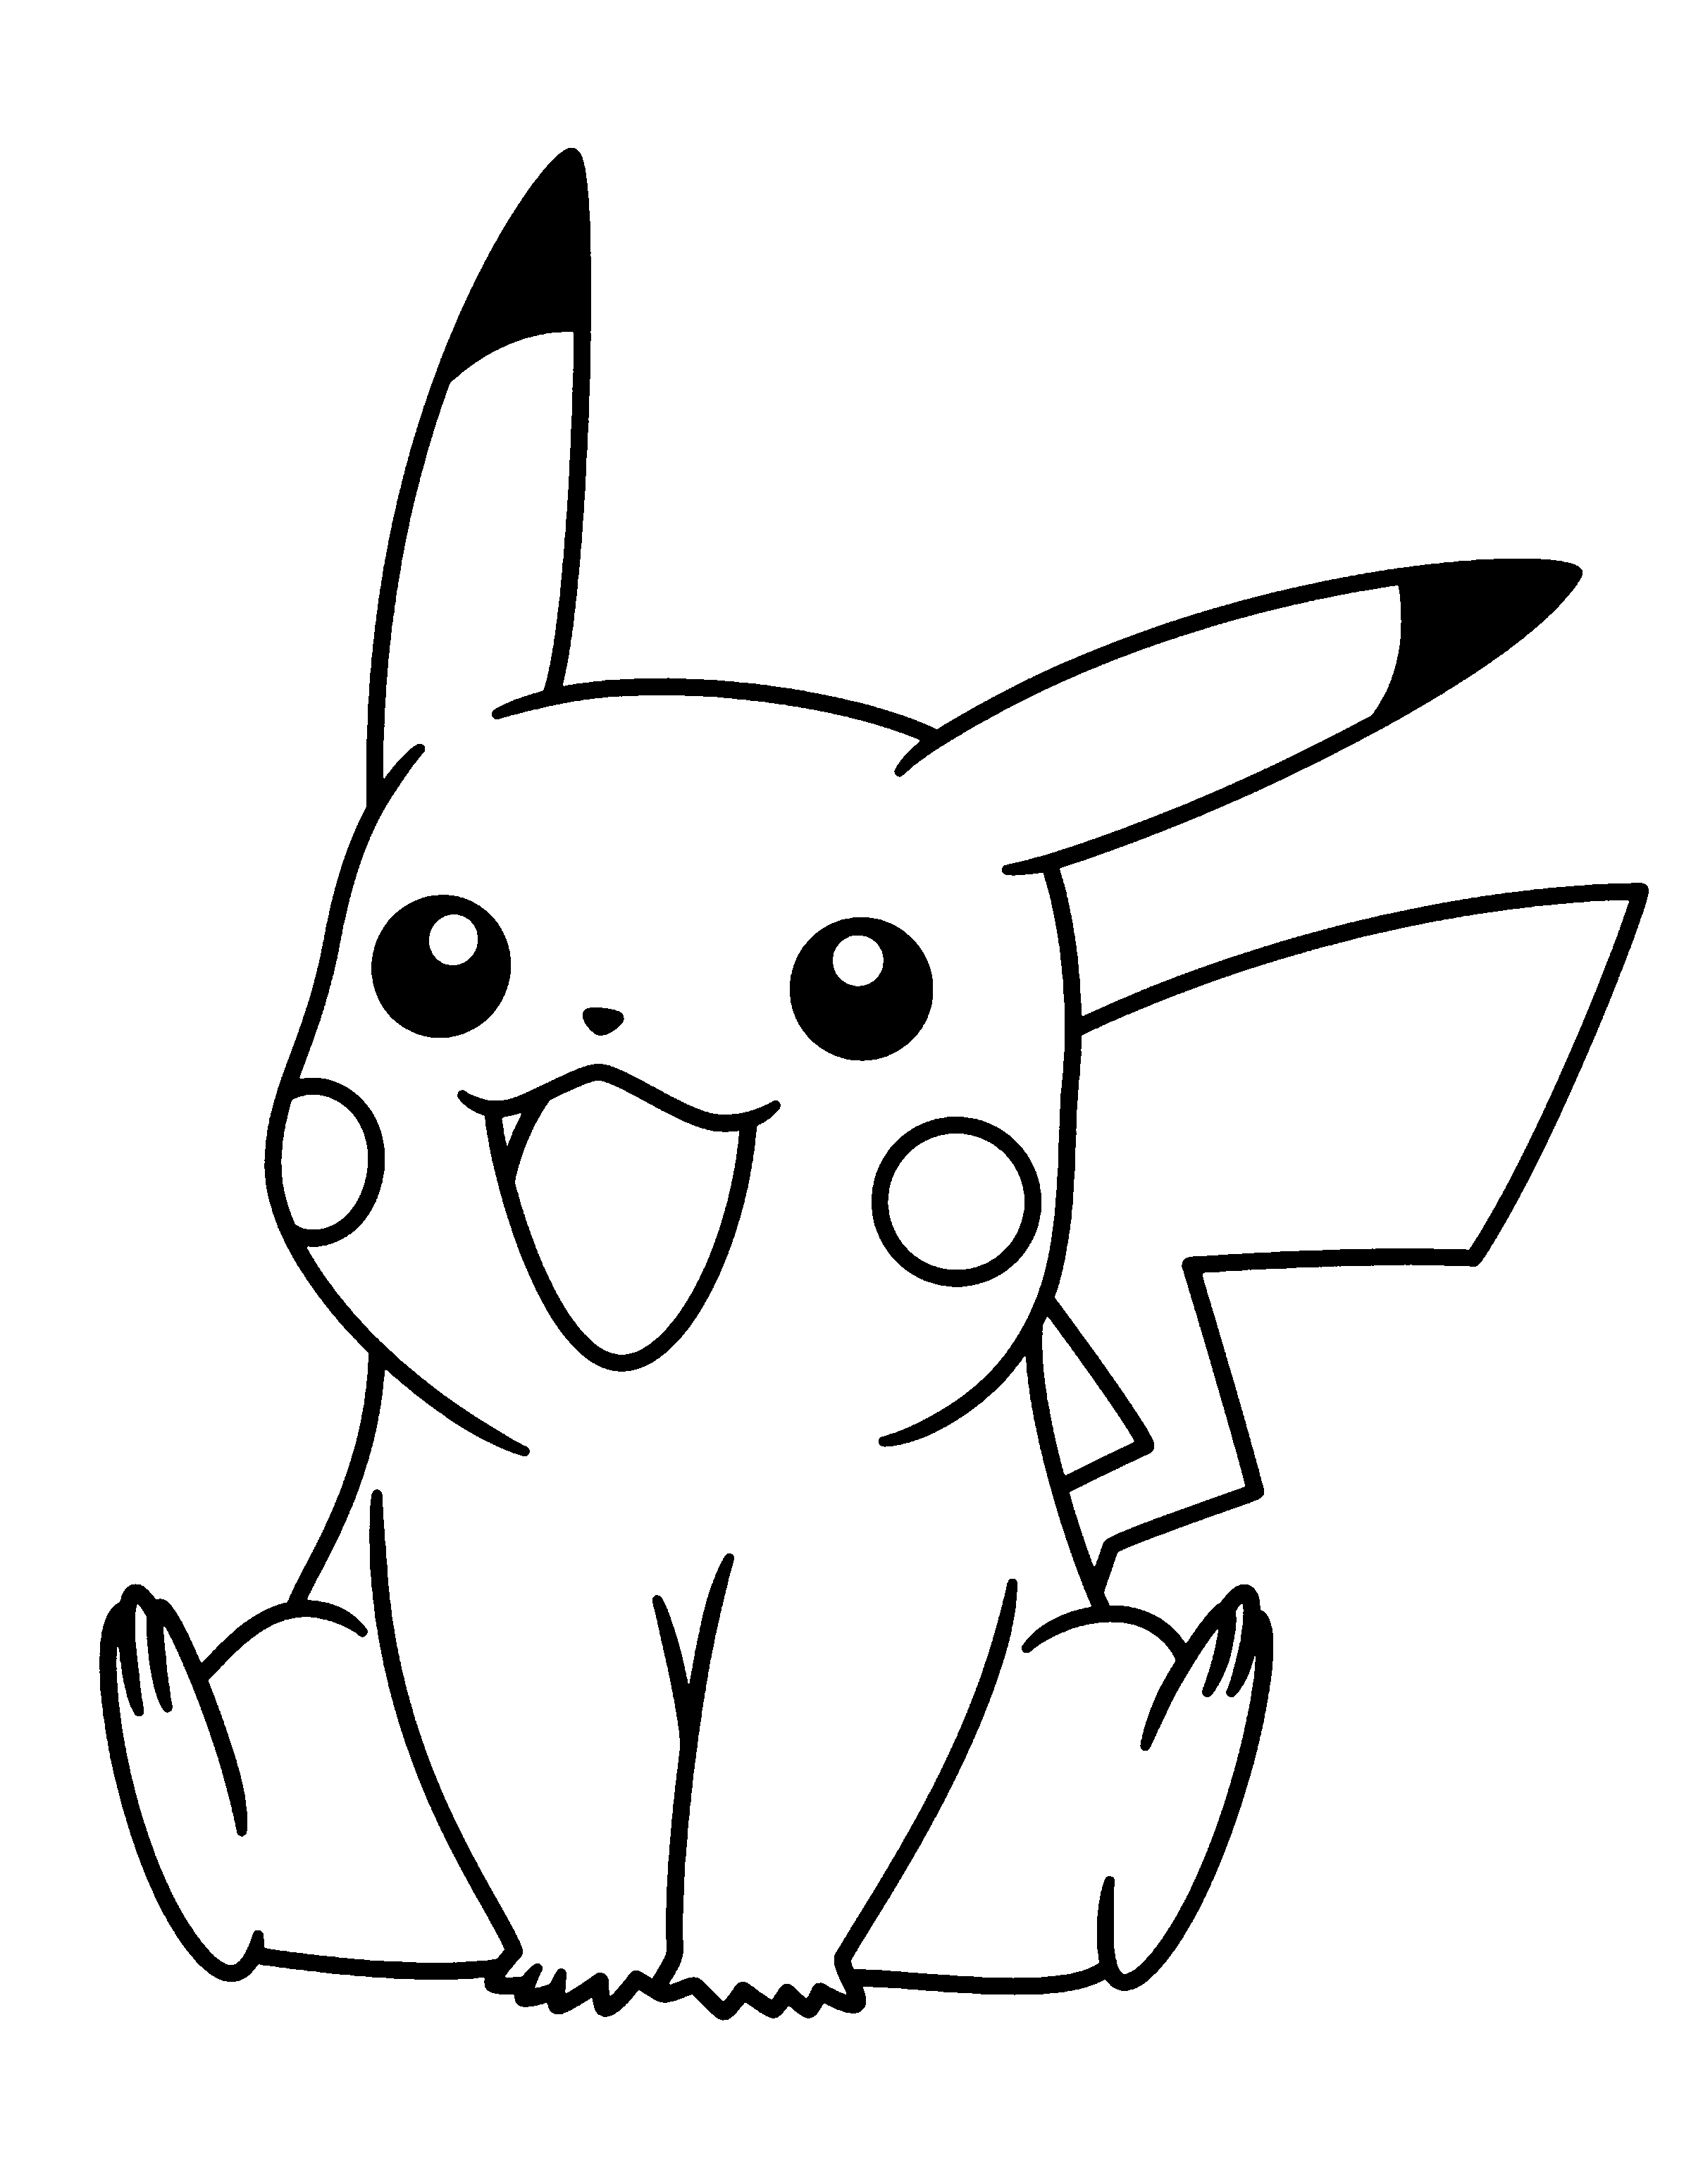 pokemon coloring pages - pokemon coloring pages 162